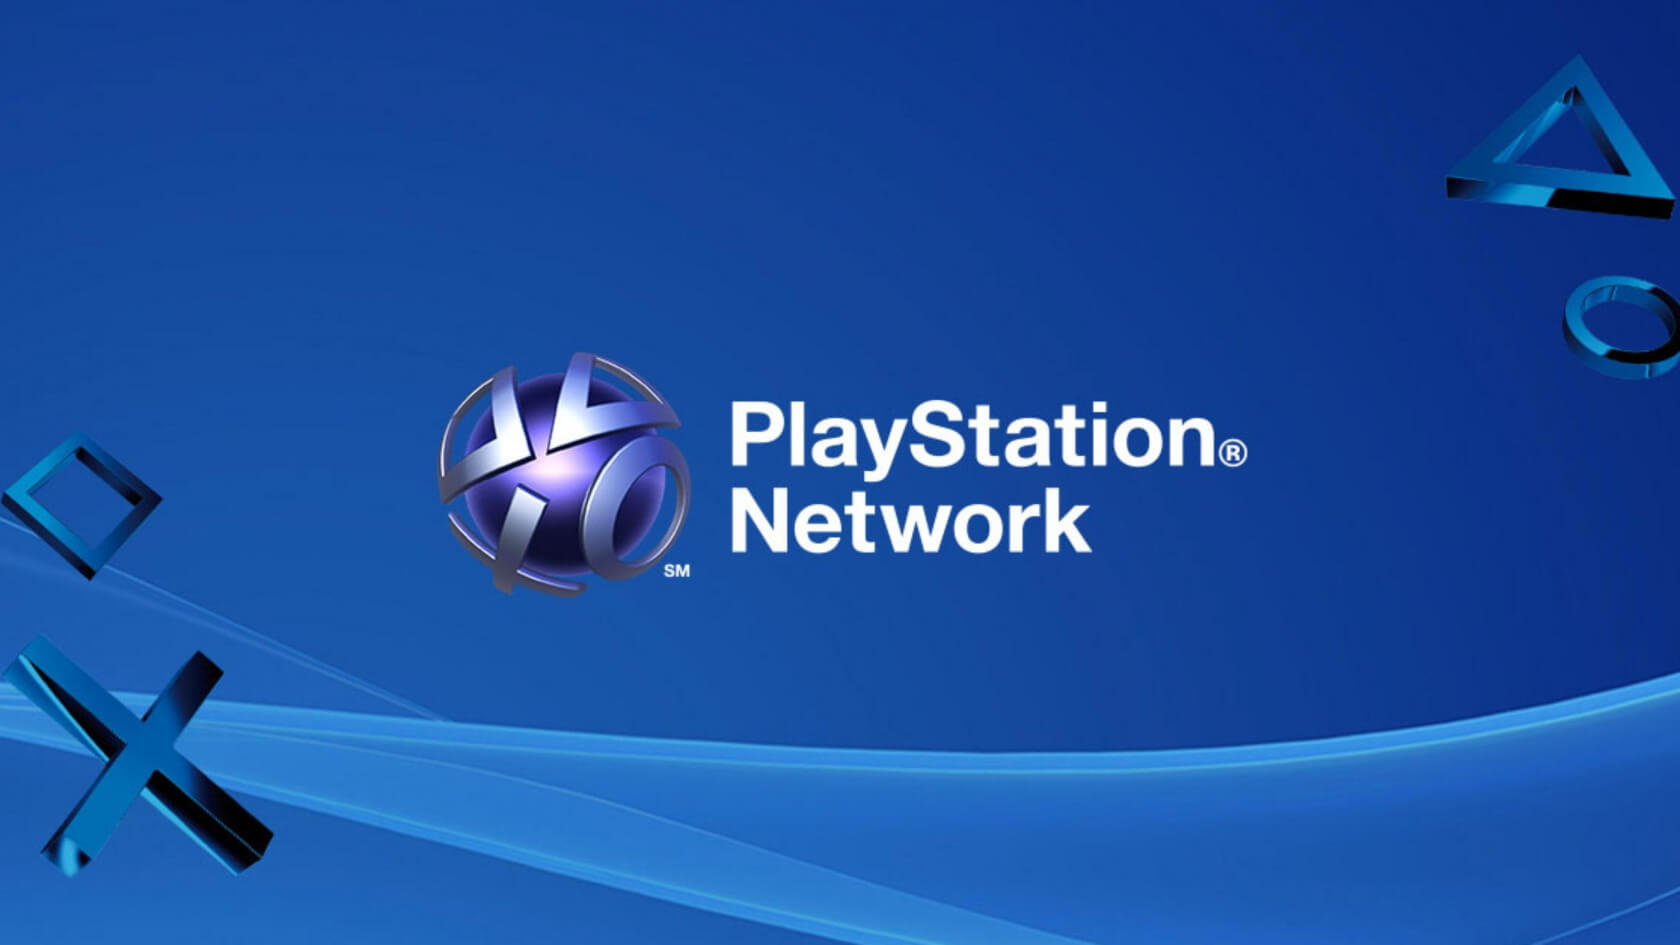 OurMine hijacked PlayStation's Twitter claiming it hacked PSN and stole user data